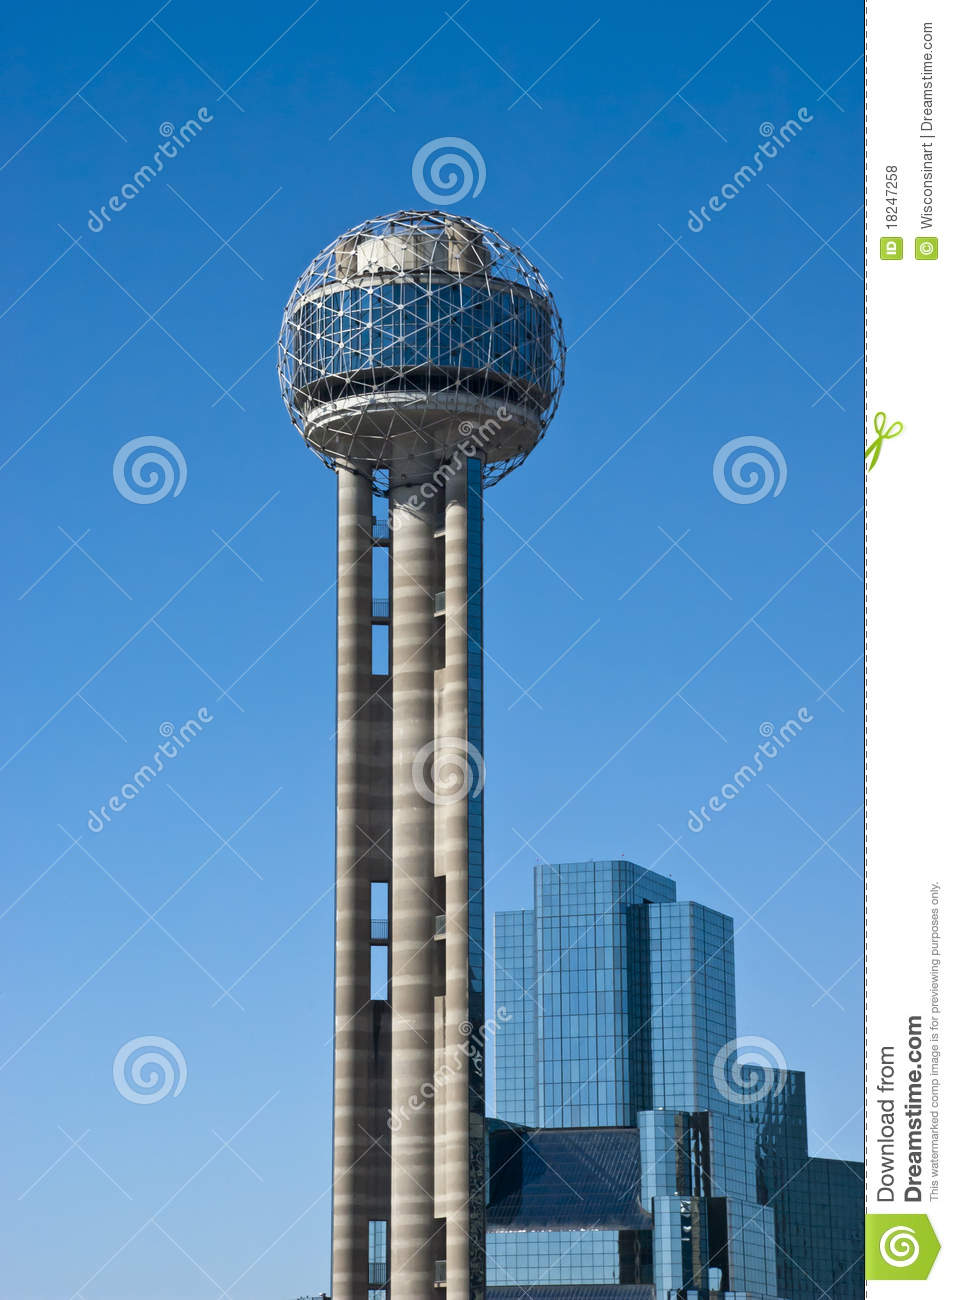 Reunion Tower In Downtown Dallas Texas Stock Photo  Image of historic texan 18247258